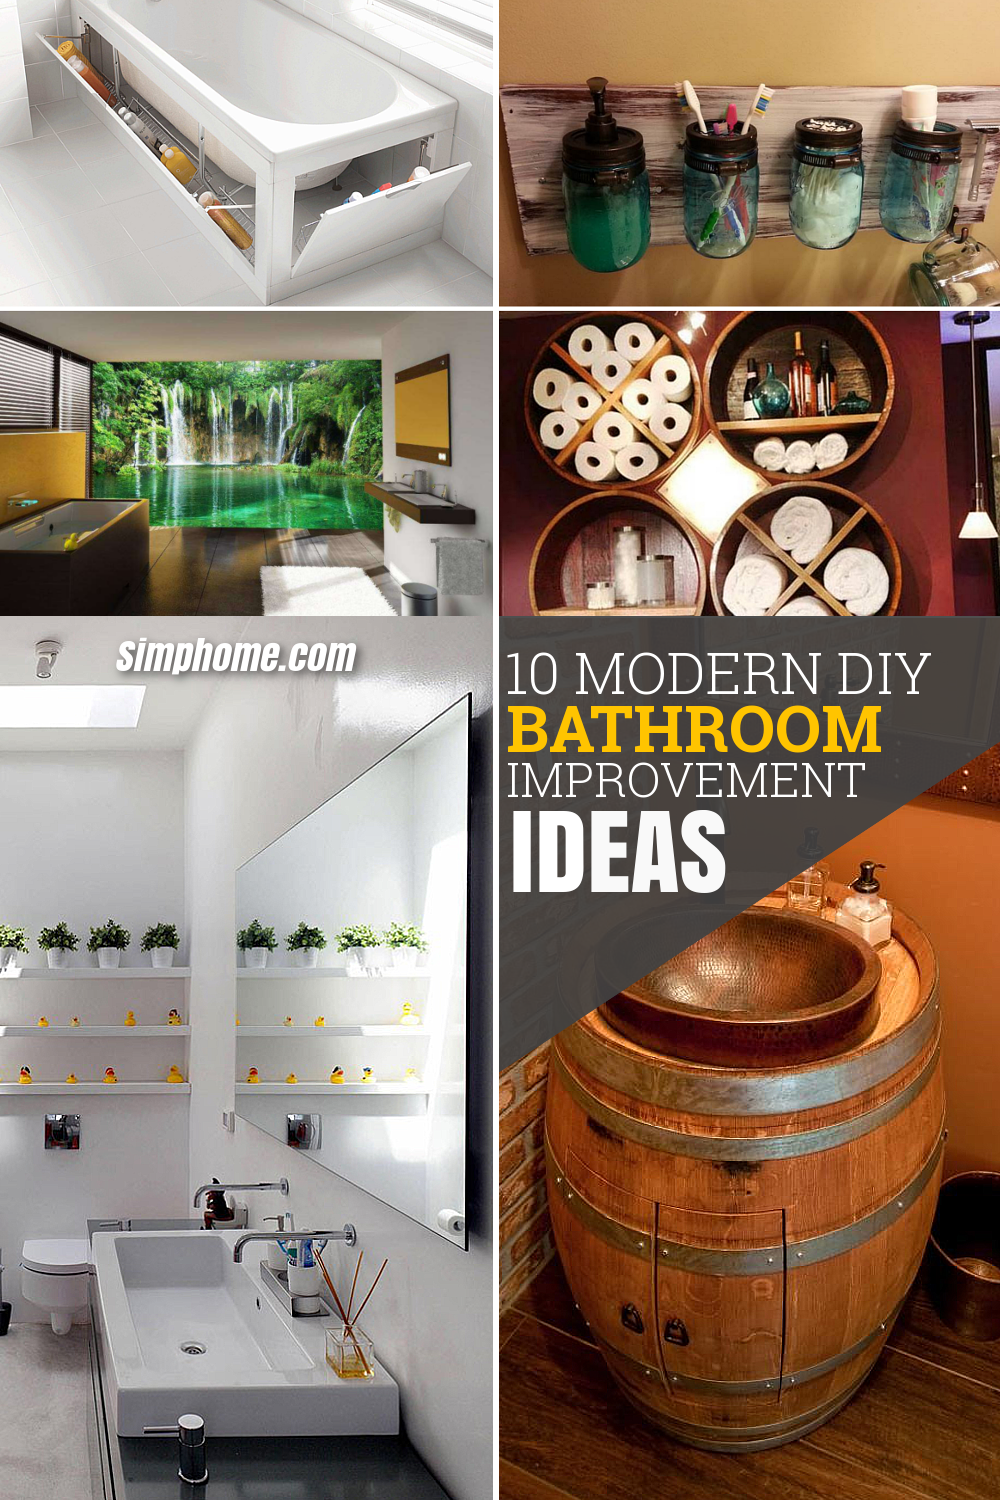 10 Modern Bathrooms and DIY Improvement Ideas via Simphome Pinterest image